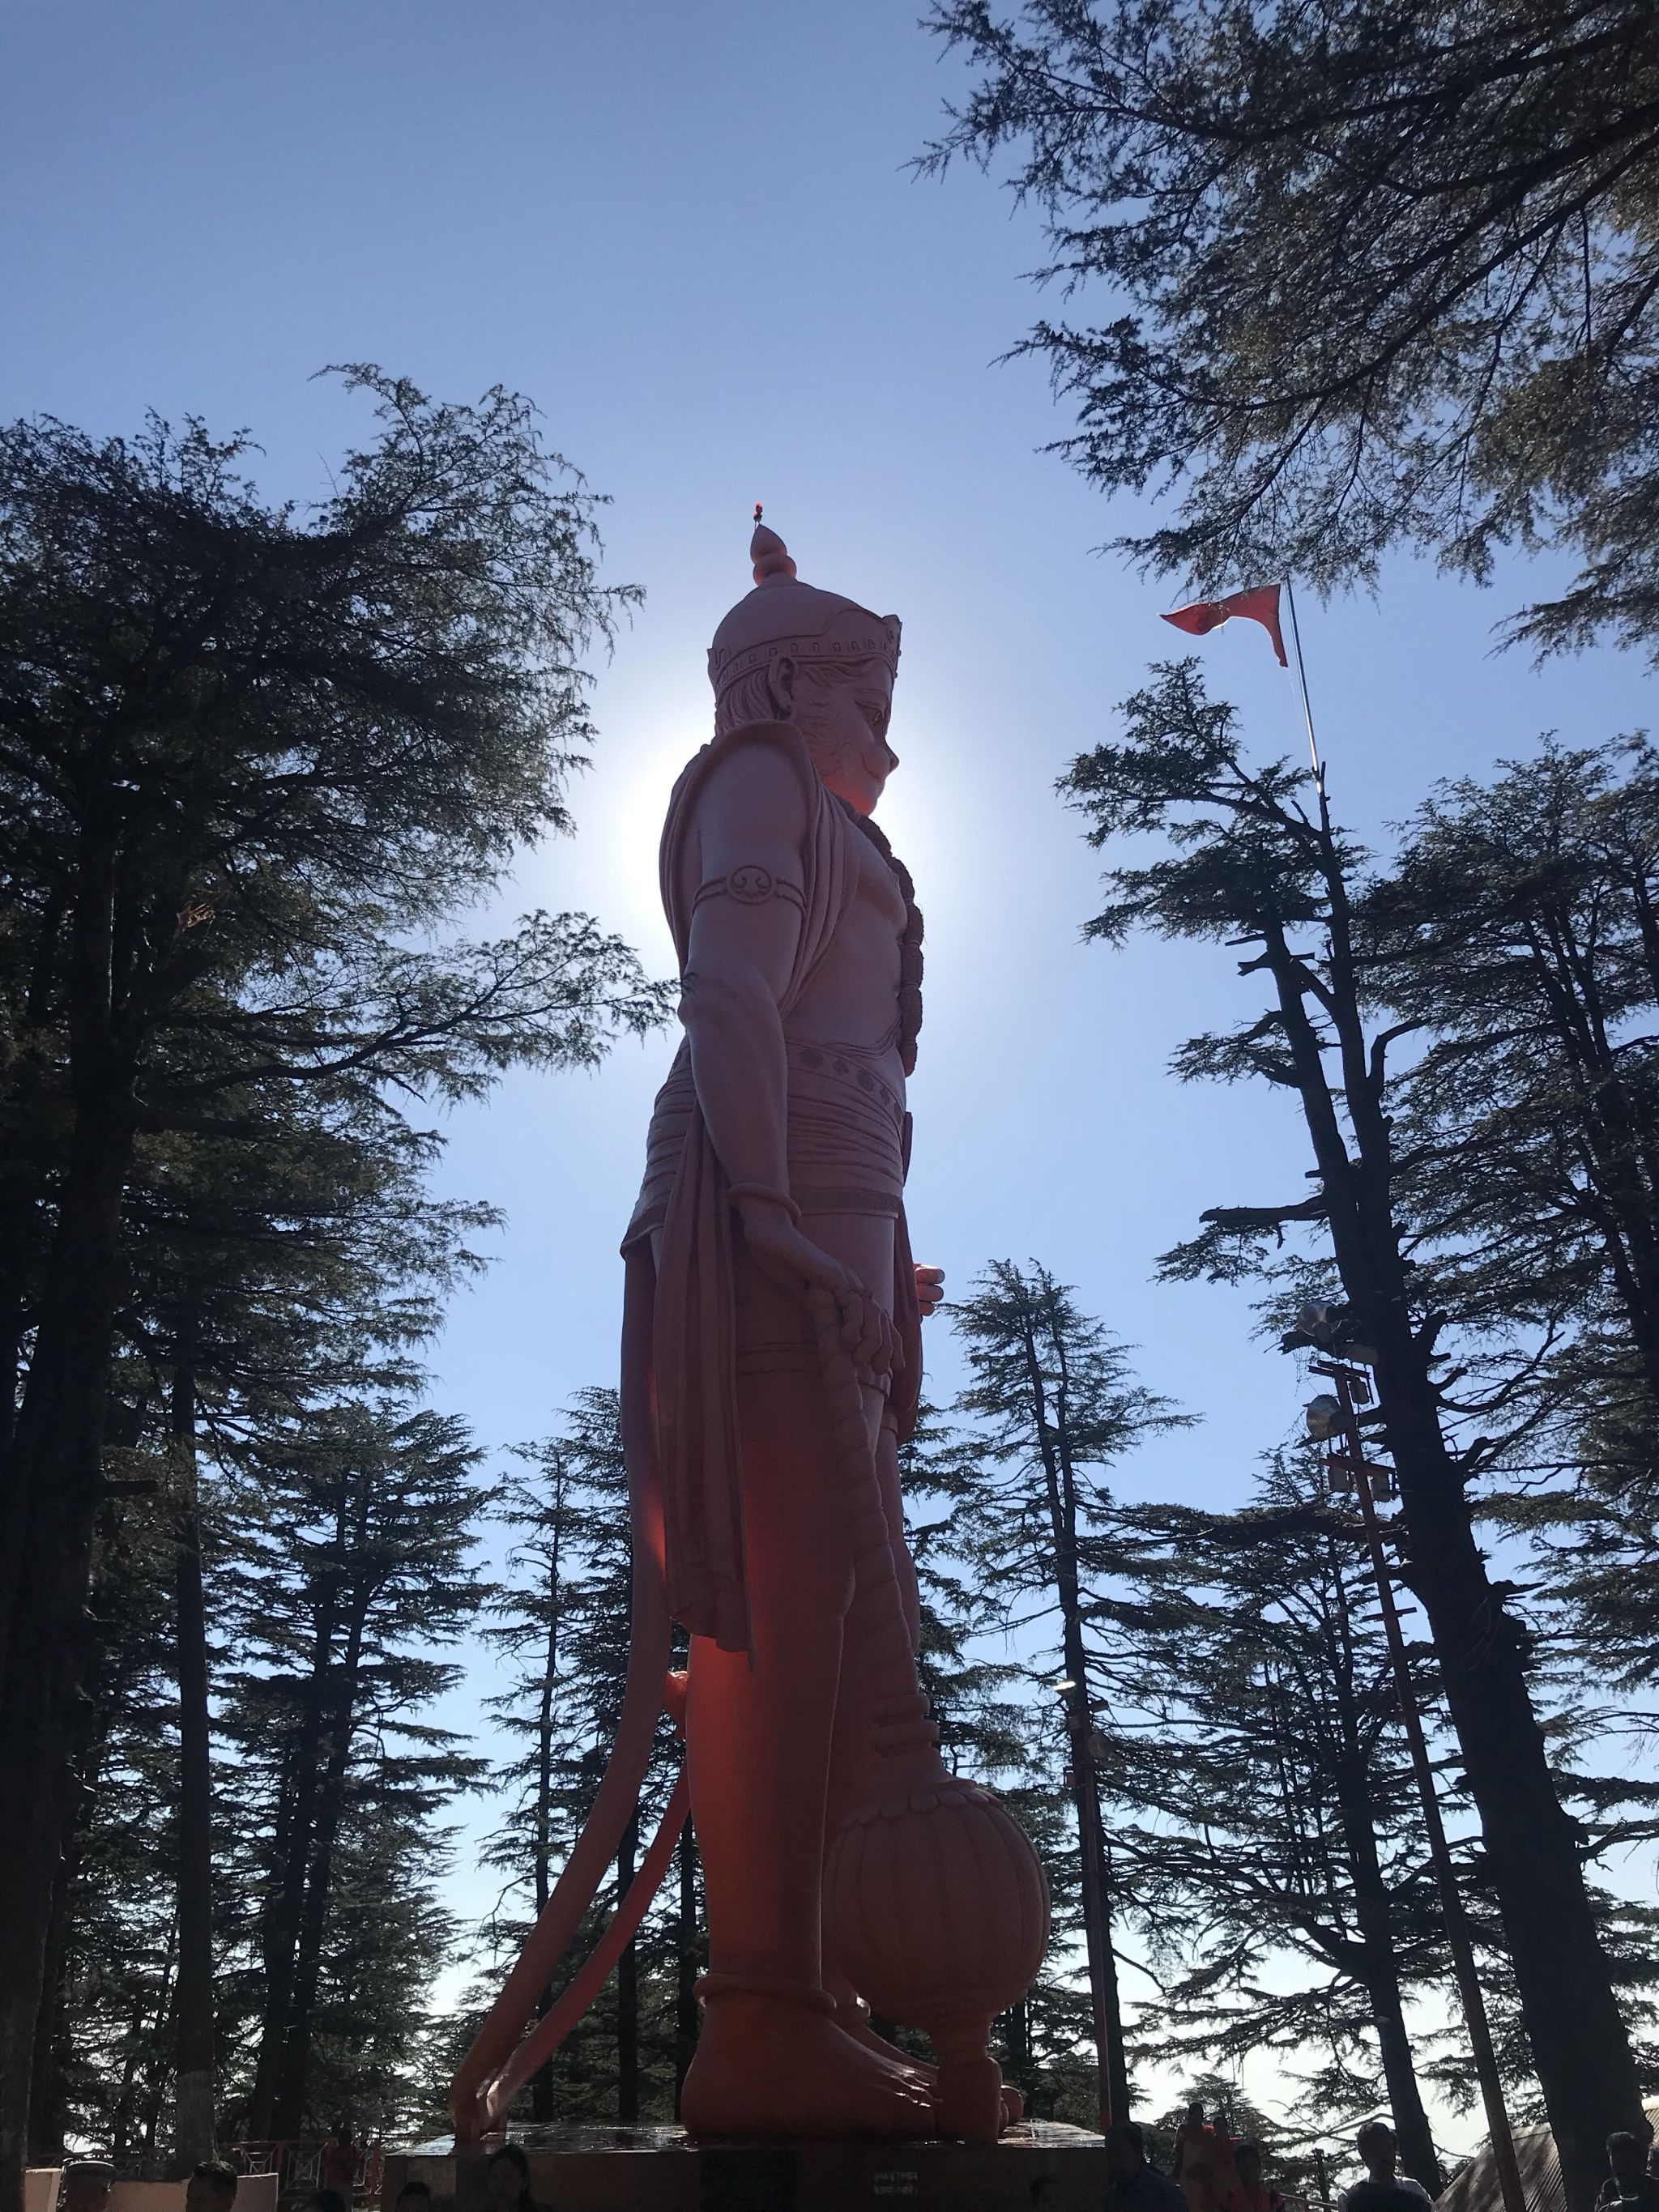 Lord Hanuman at Jakhoo Temple, Shimla